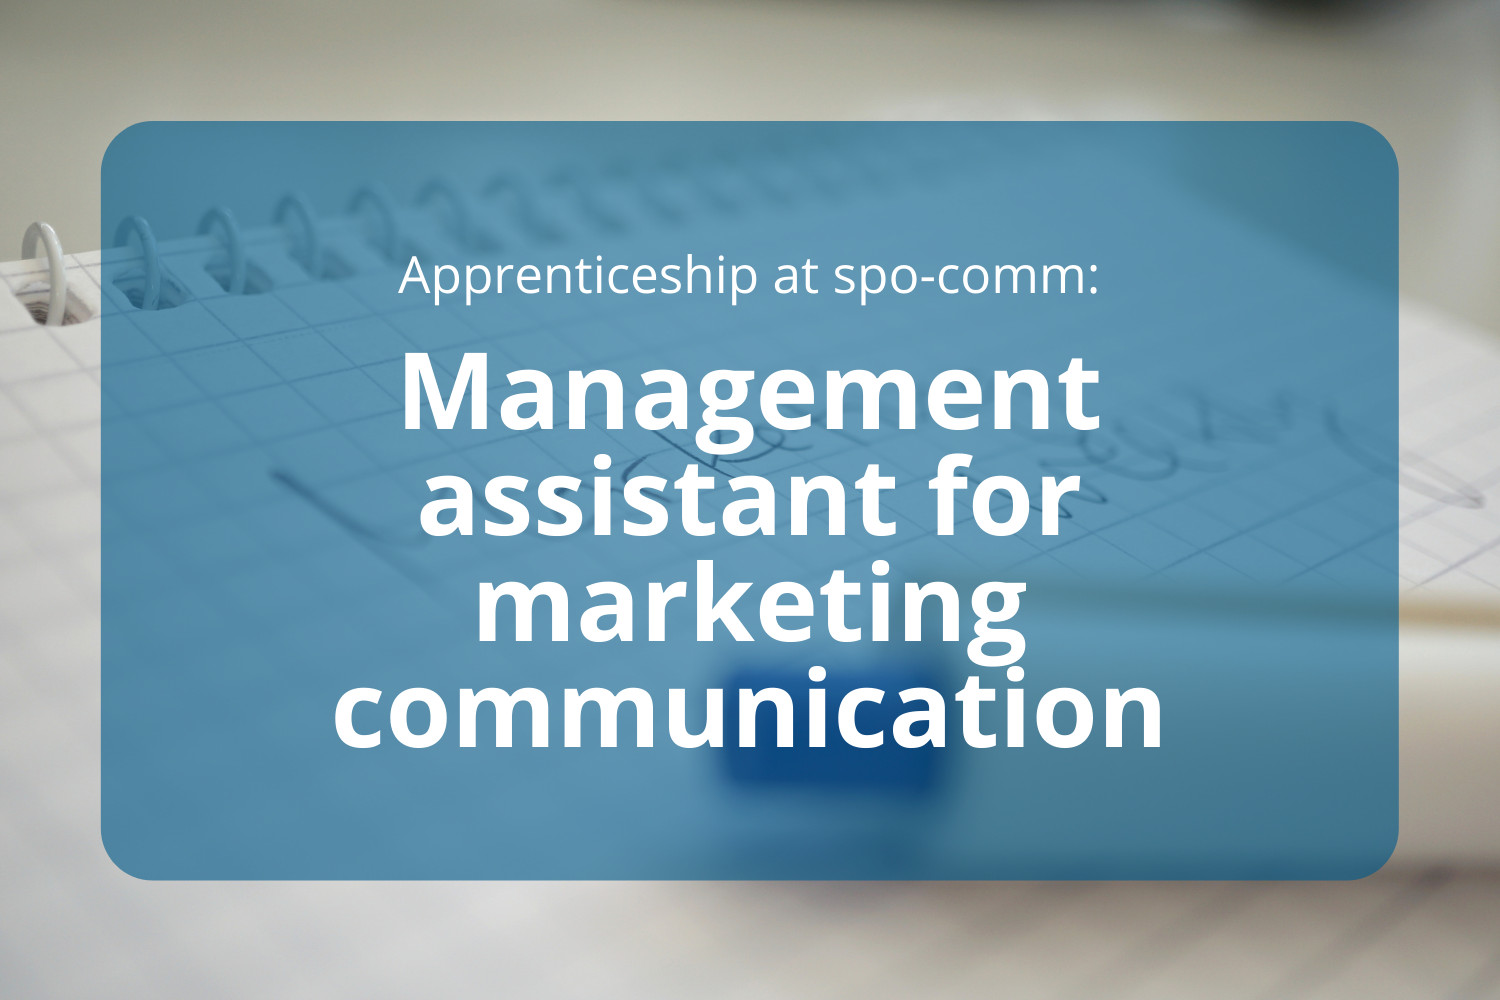 Apprenticeship in marketing communication at spo-comm